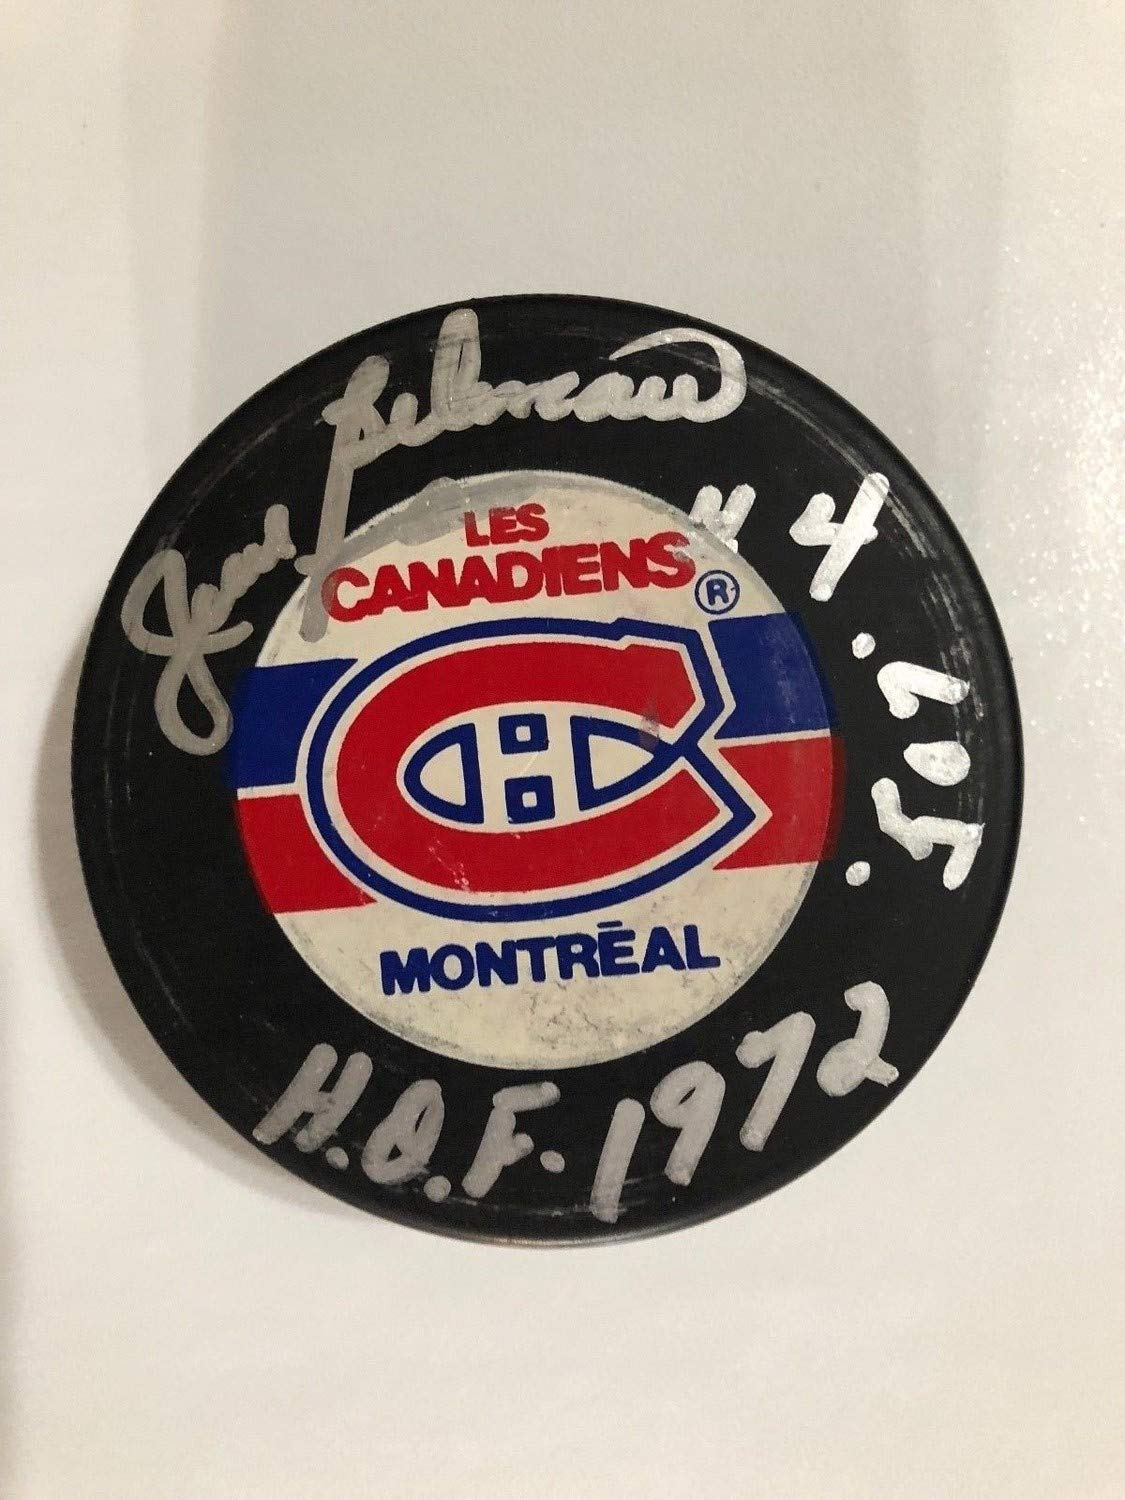 Jean Beliveau Autographed Signed Canadiens Puck withInsc 507 Hof1972 Beckett Cer E29070